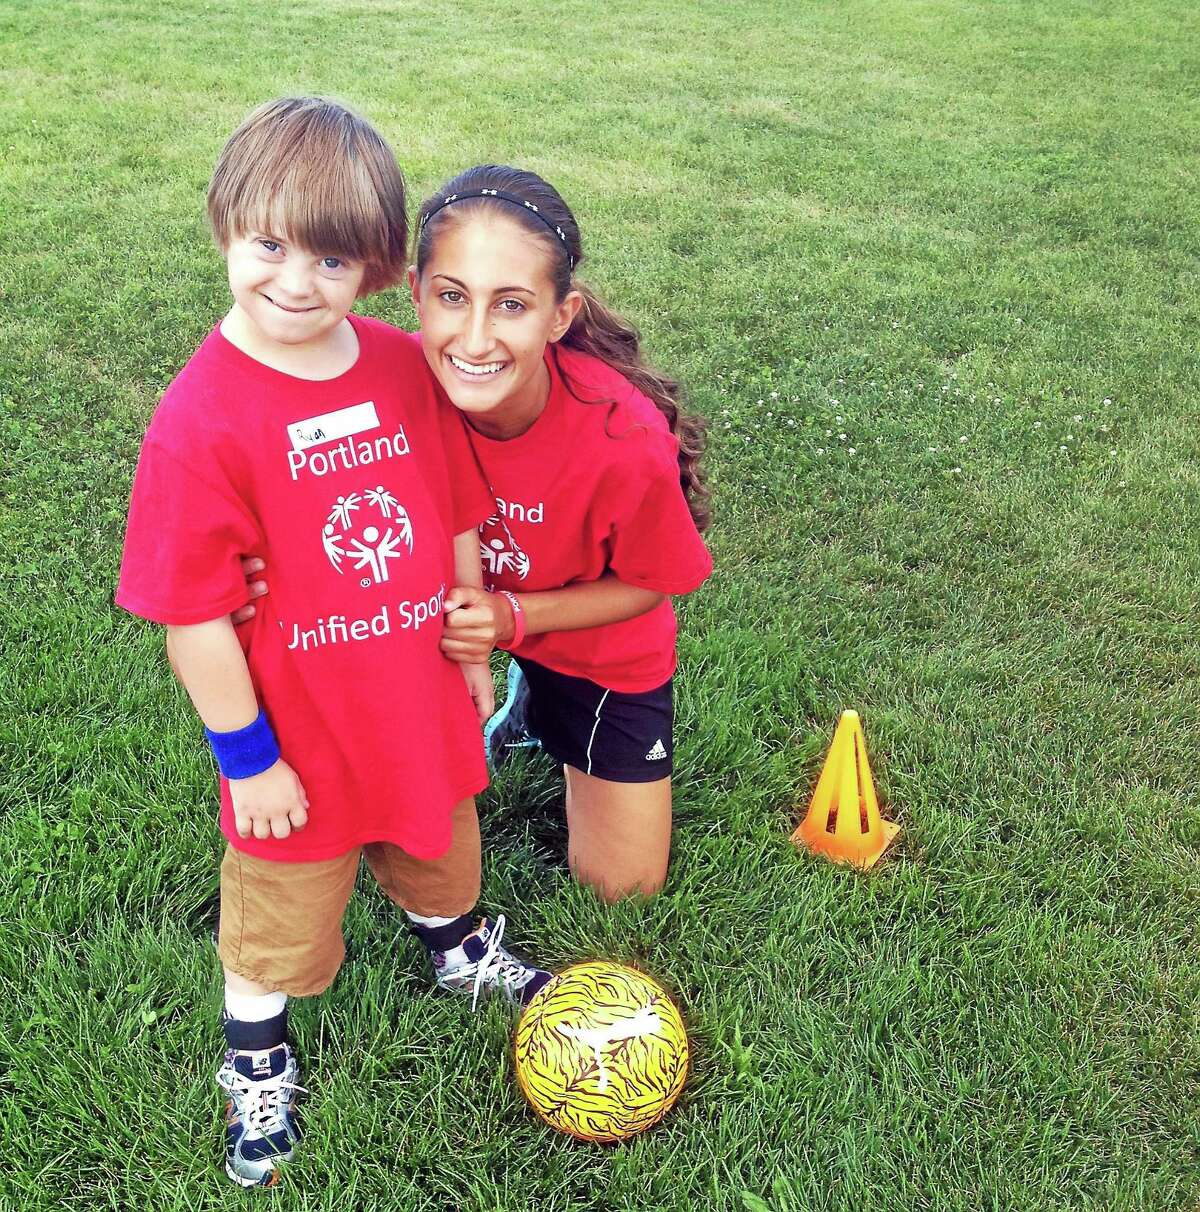 One woman's dream for a sports league for children of all athletic abilities has grown into the Unified Sports program, where participation has increased from eight children to 20 and now 38 taking part in the six-week summer camp.